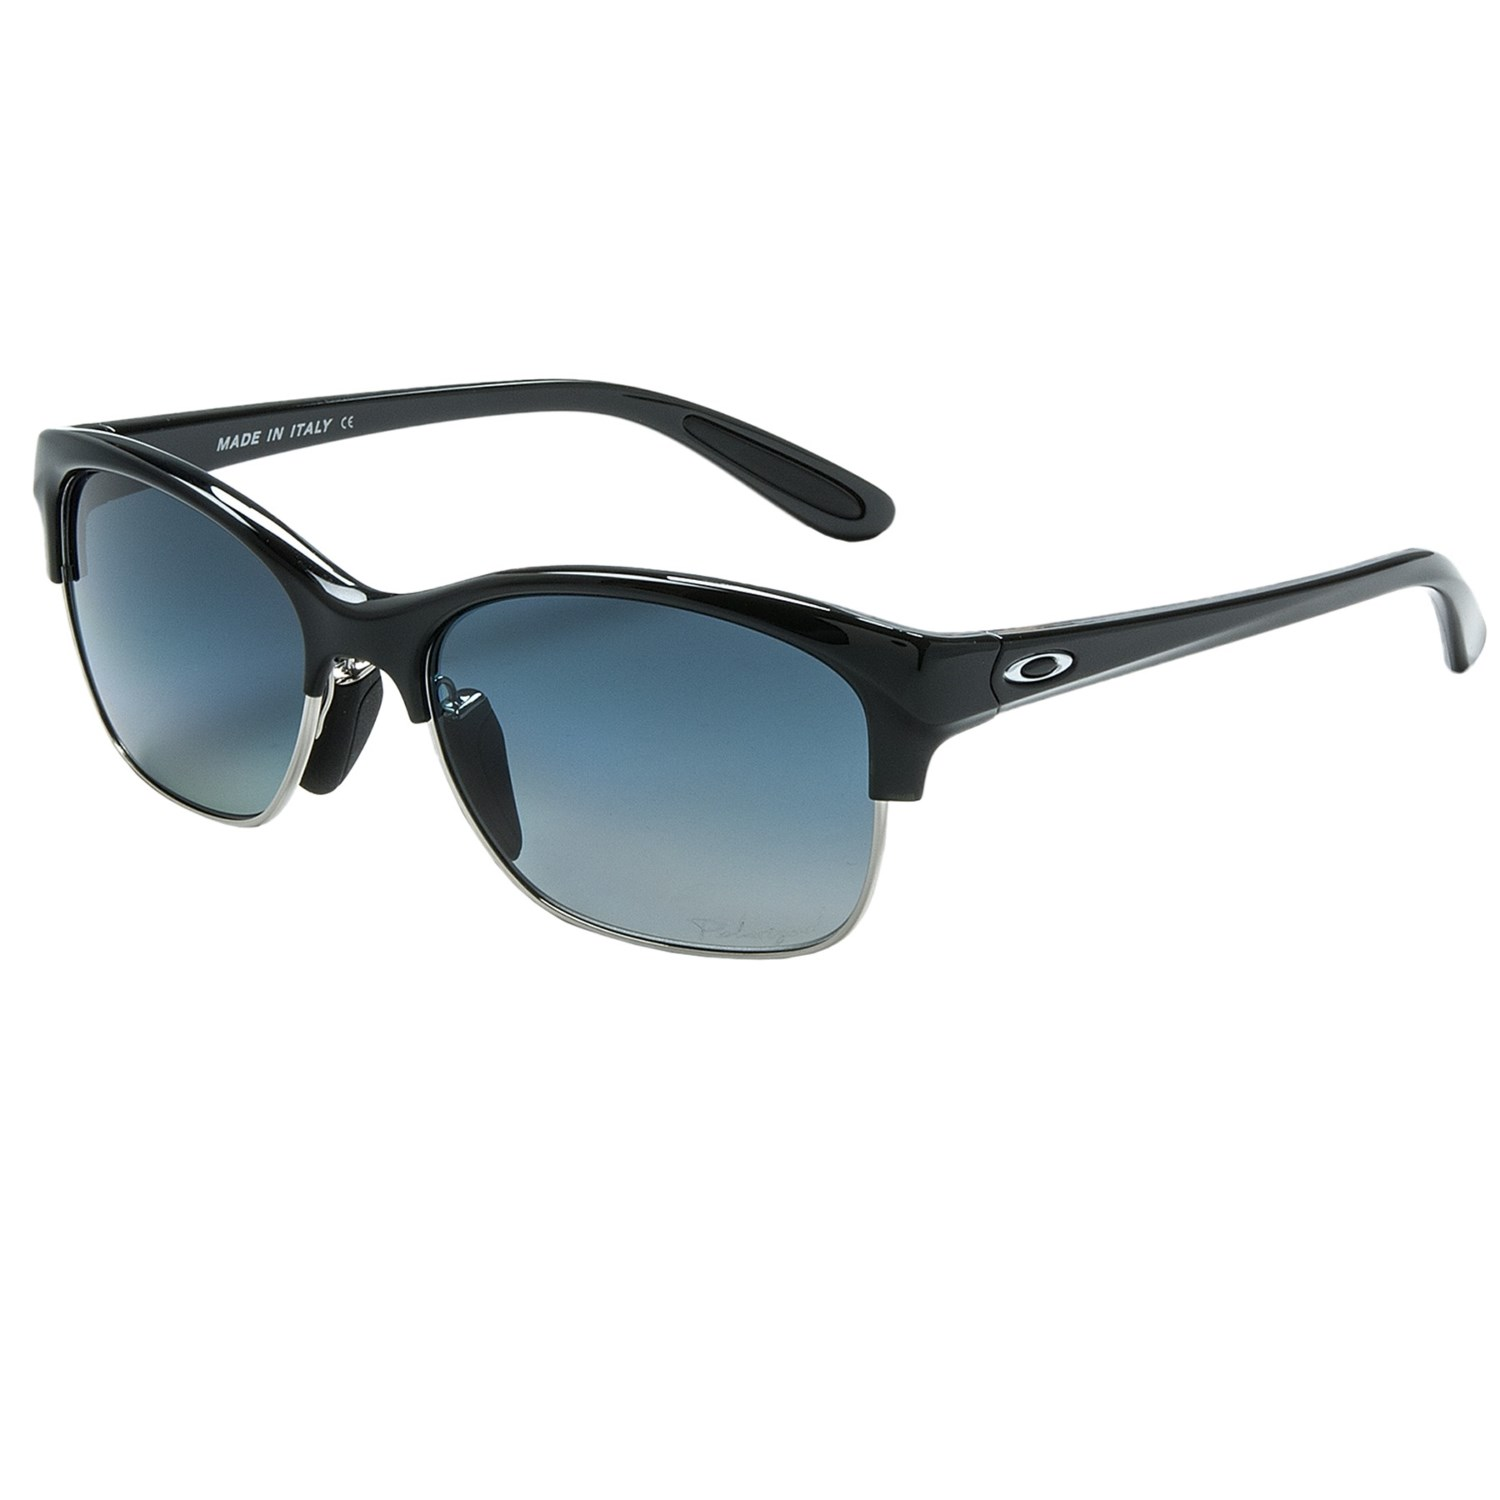 Oct 31, · Find the best Sunglass Hut coupons, promo codes and deals for December All coupons hand-verified and guaranteed to work. Exclusive offers and bonuses up to % back!